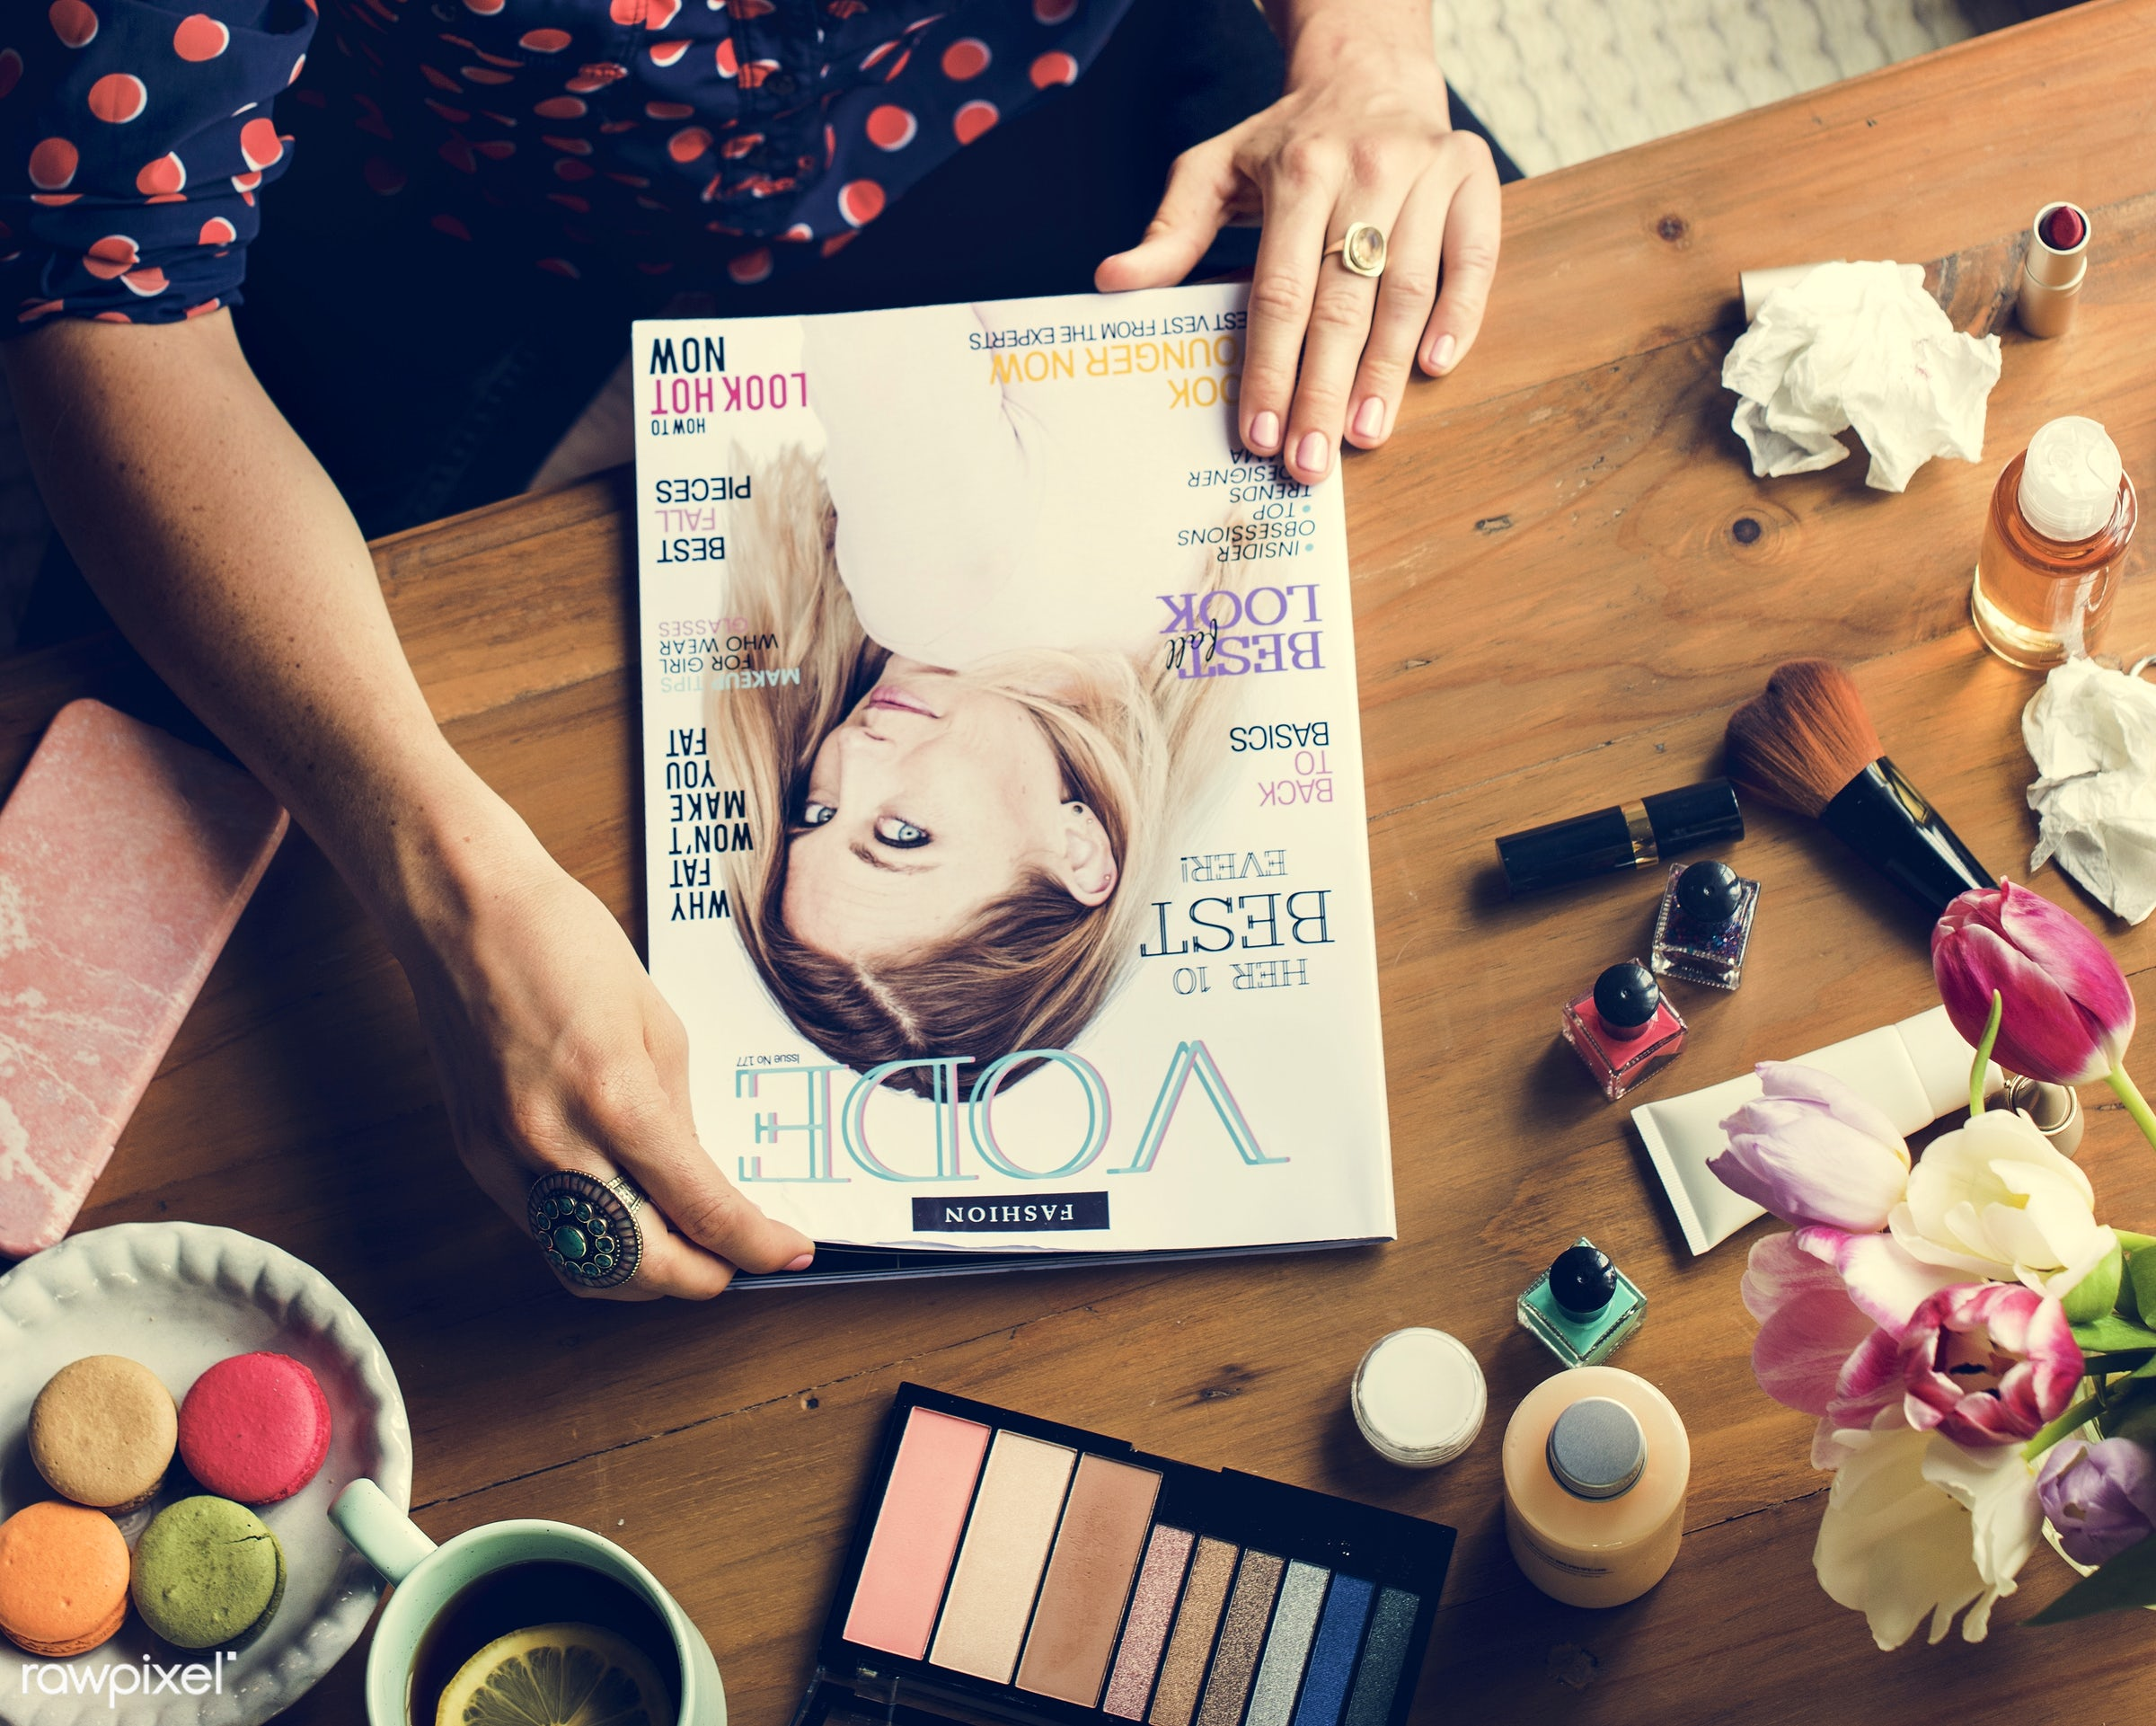 apply, person, nail polish, makeup, treatment, palette, people, glamour, tools, woman, care, flower, colors, hobby, leisure...